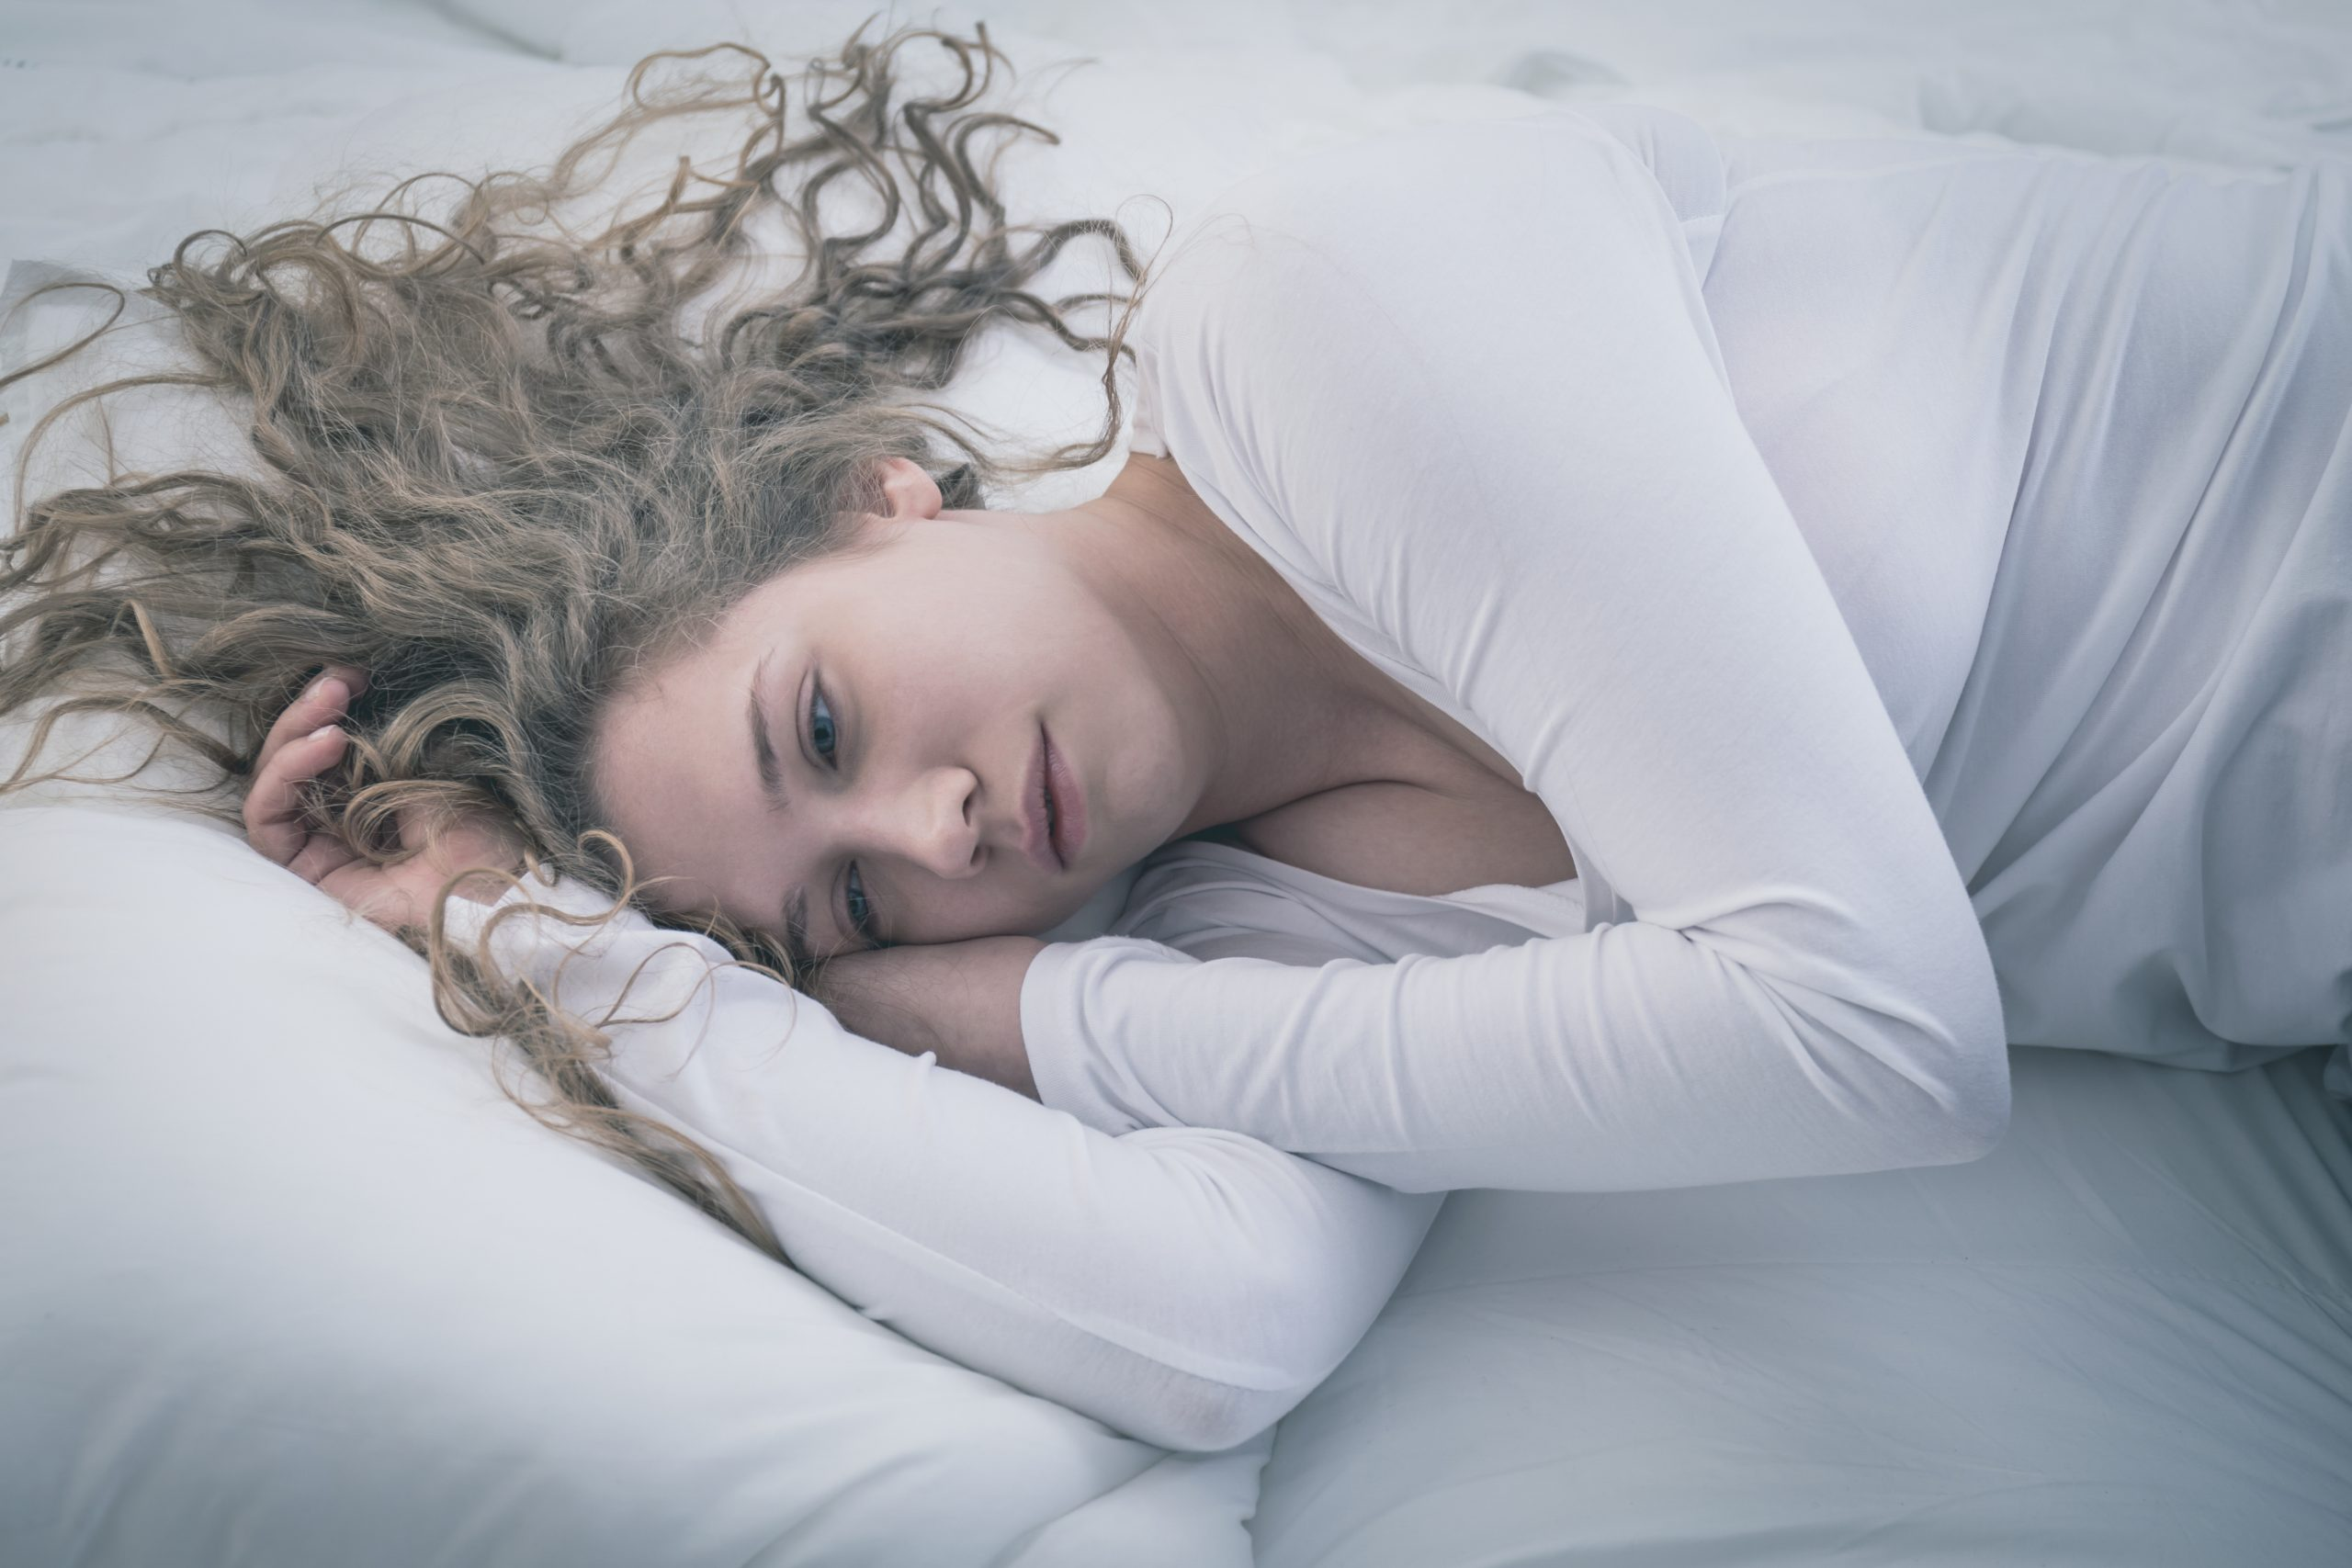 Young blond woman with curly hair wearing white in deep depression lying alone